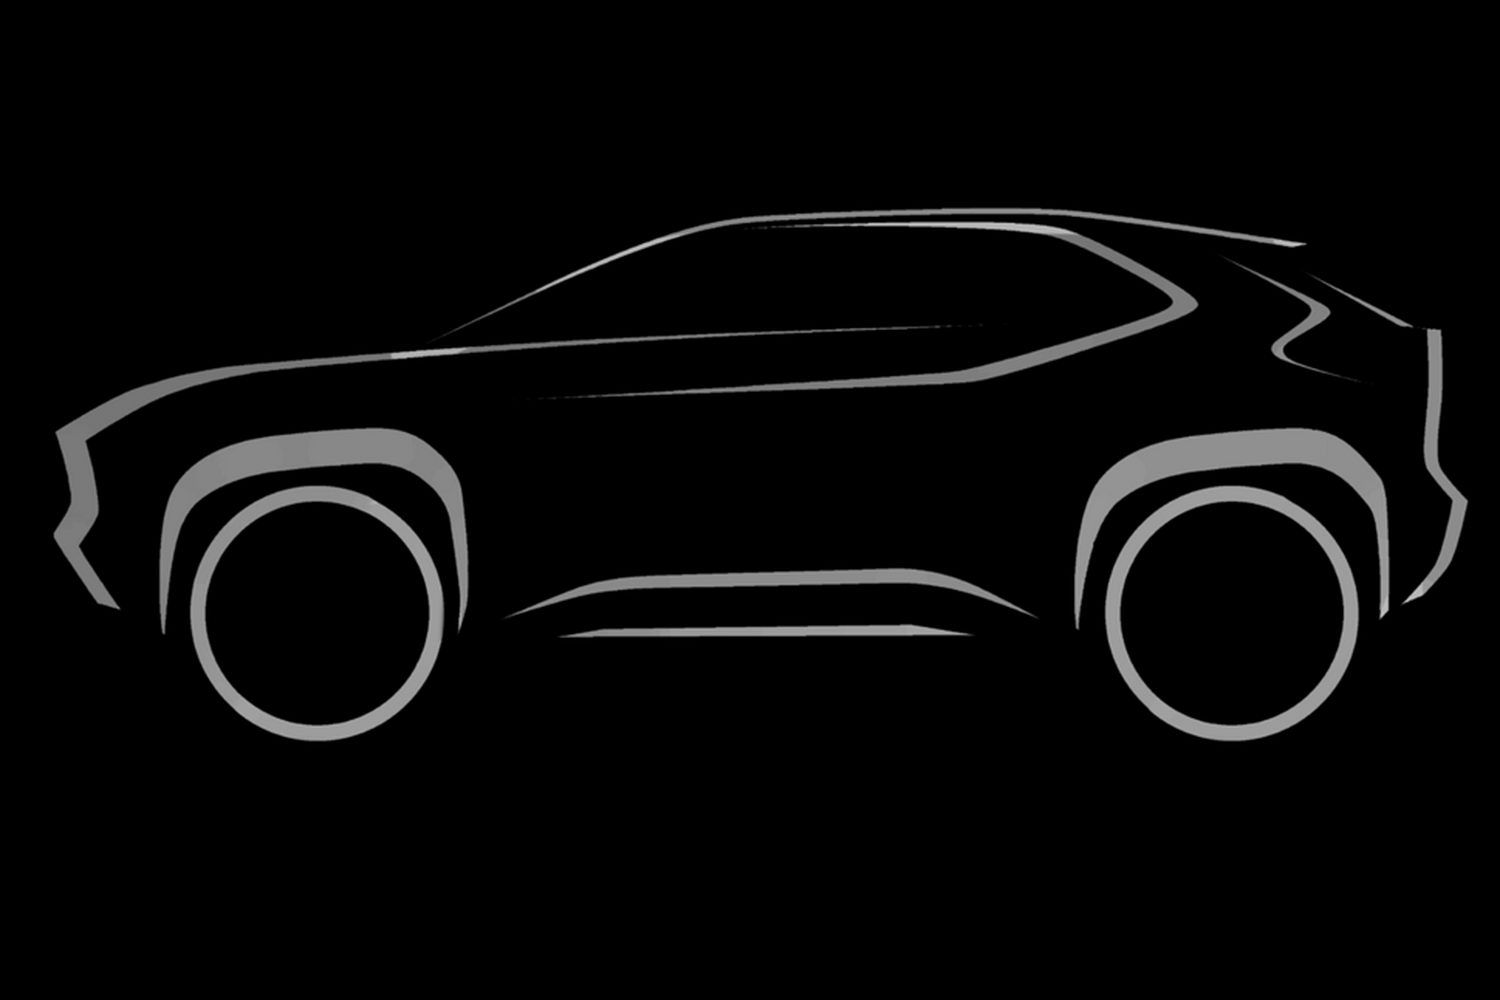 Toyota will launch a new small crossover